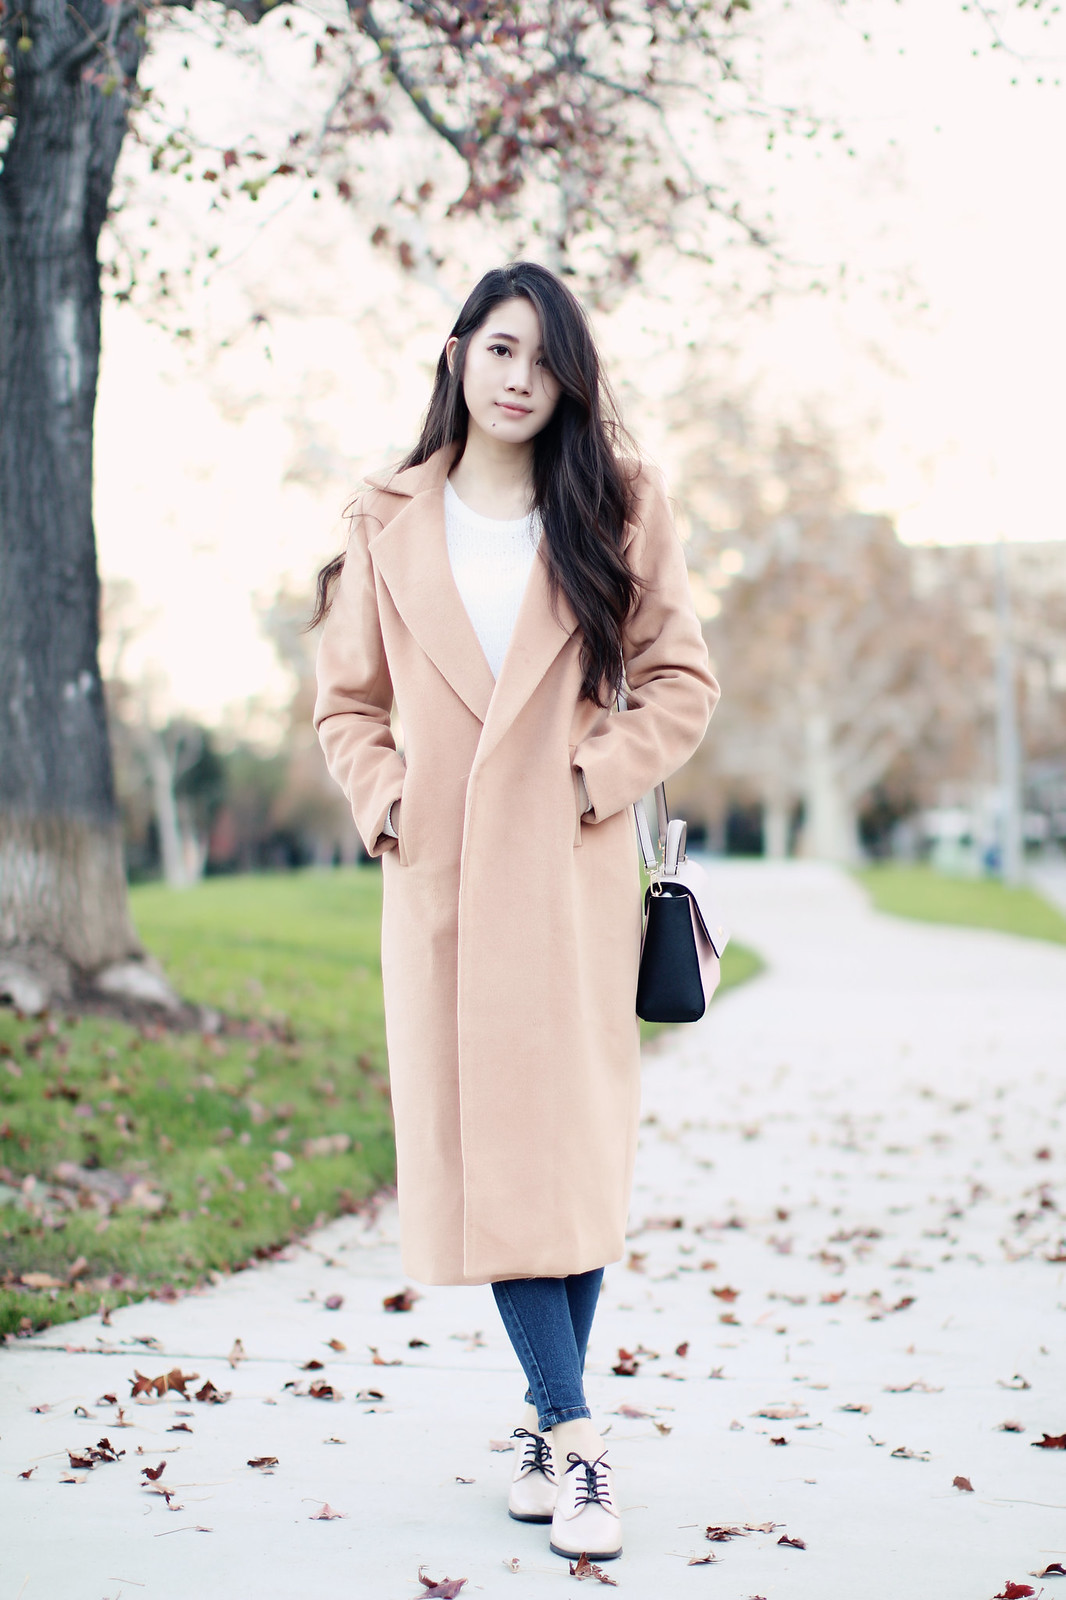 1425-ootd-fashion-fall-autumn-camel-coat-clothestoyouuu-elizabeeetht-chic-classic-timeless-koreanfashion